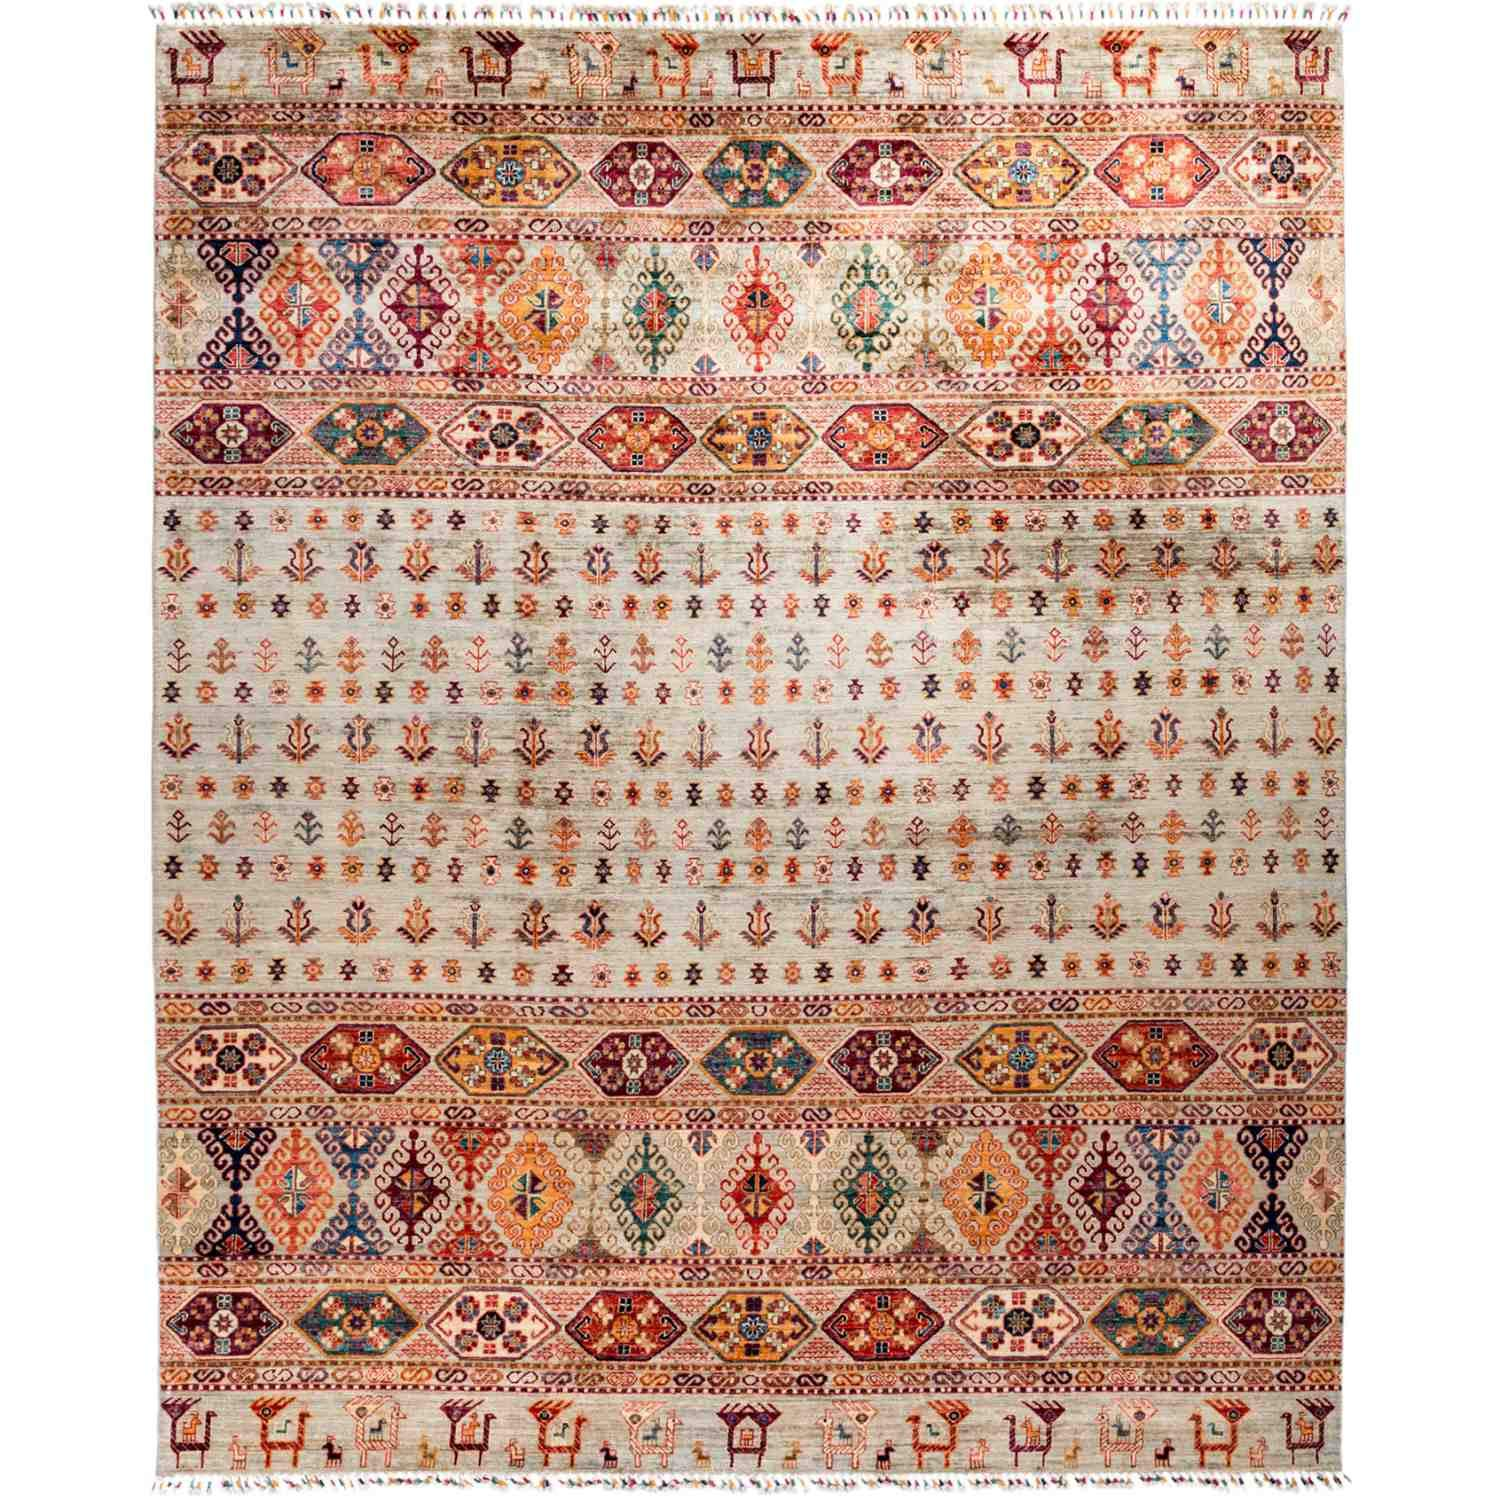 Solo Rugs Tribal Hand Knotted Area Rug 8 4 x 10 1 Bone